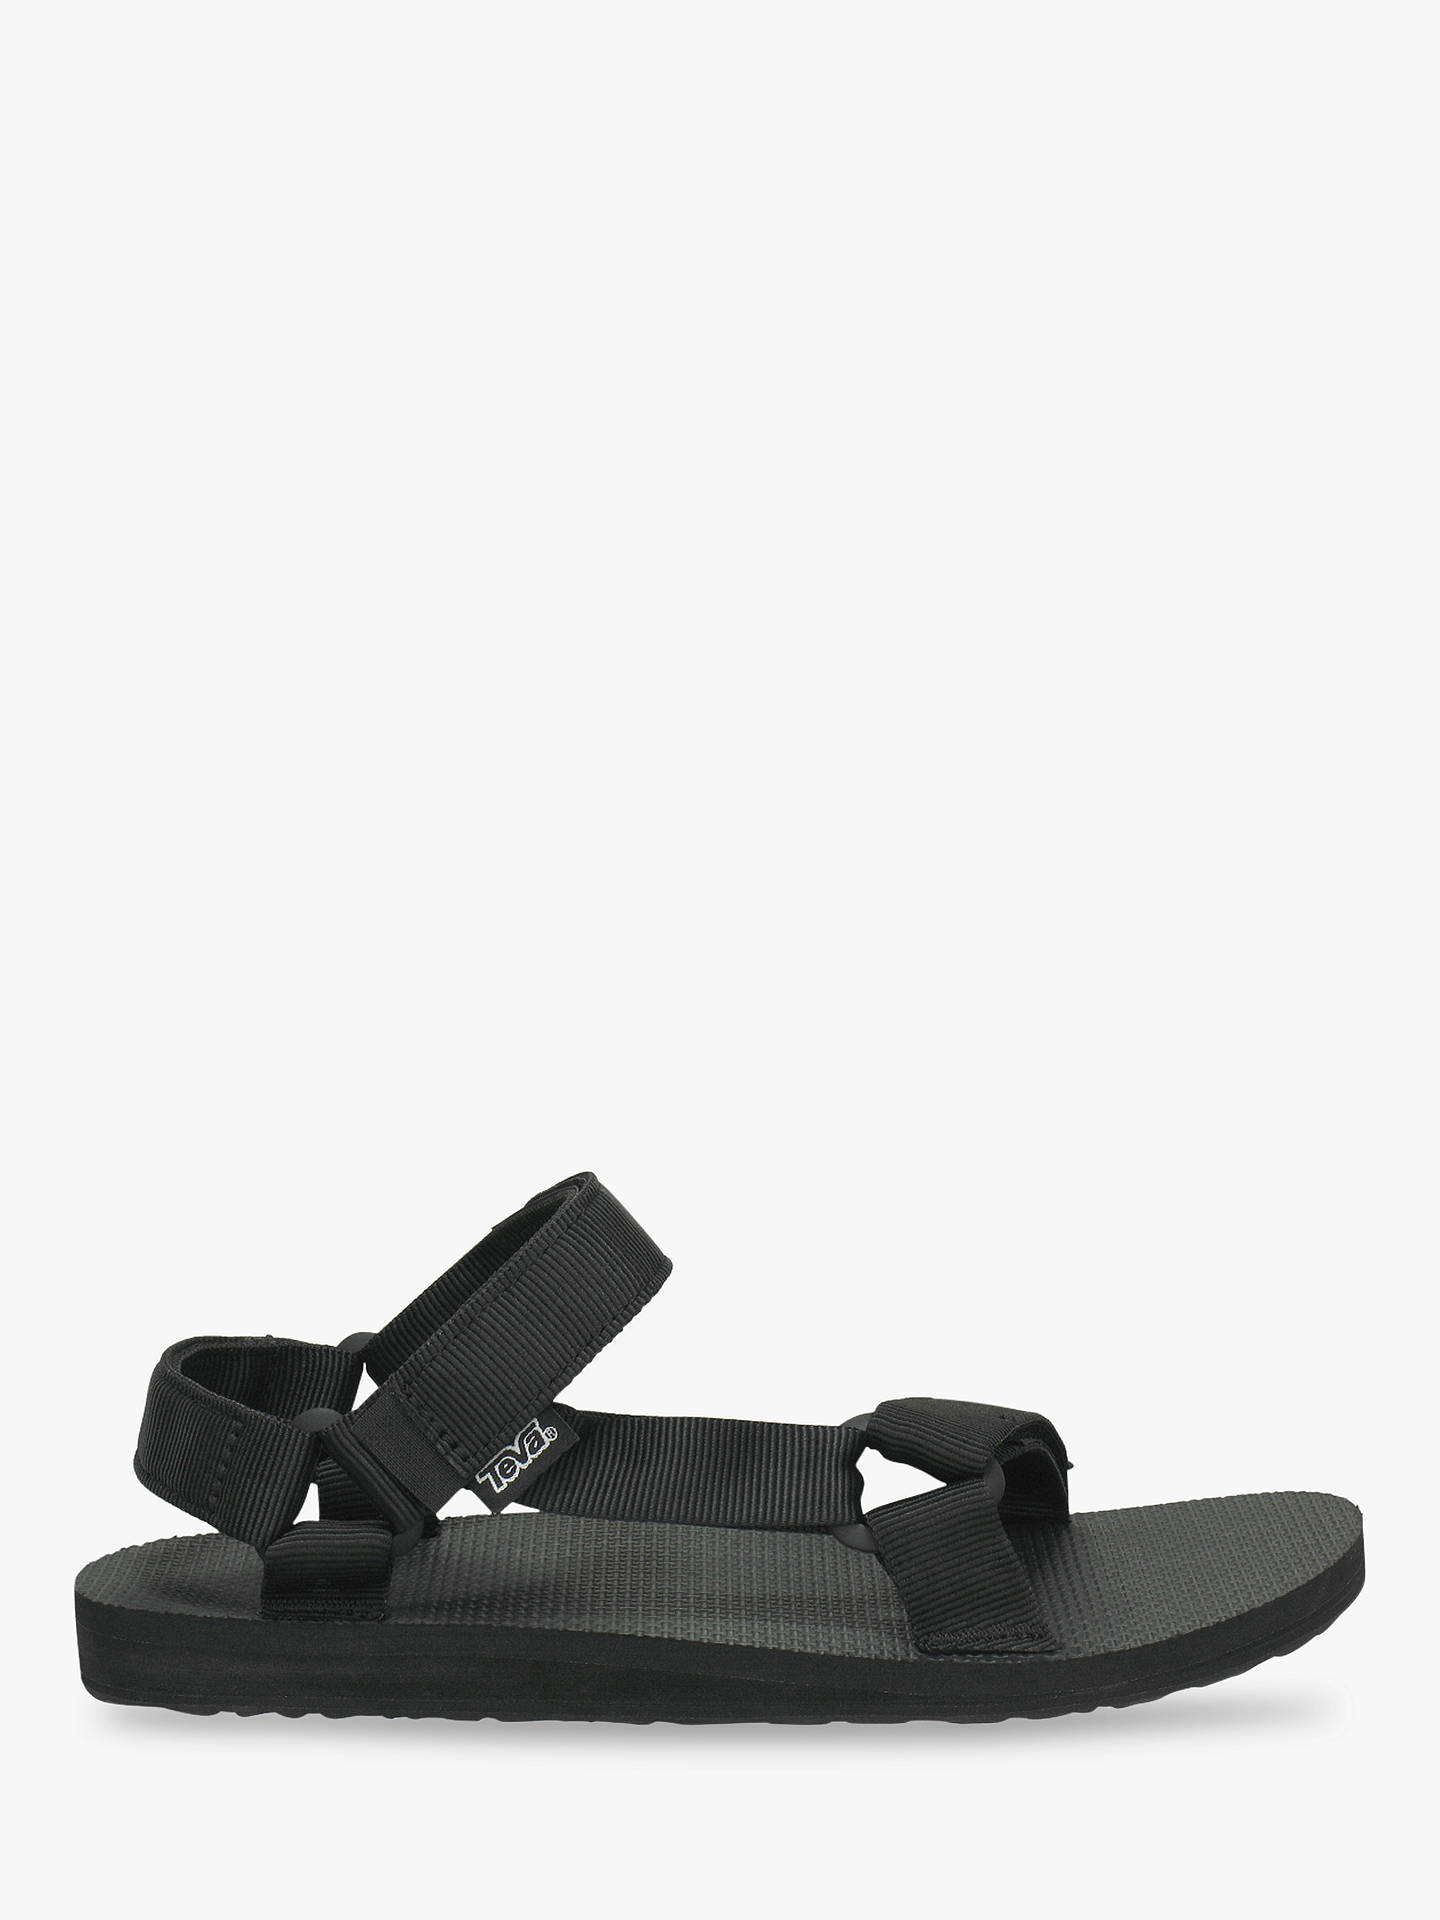 b962f0003 Buy Teva Original Sandals